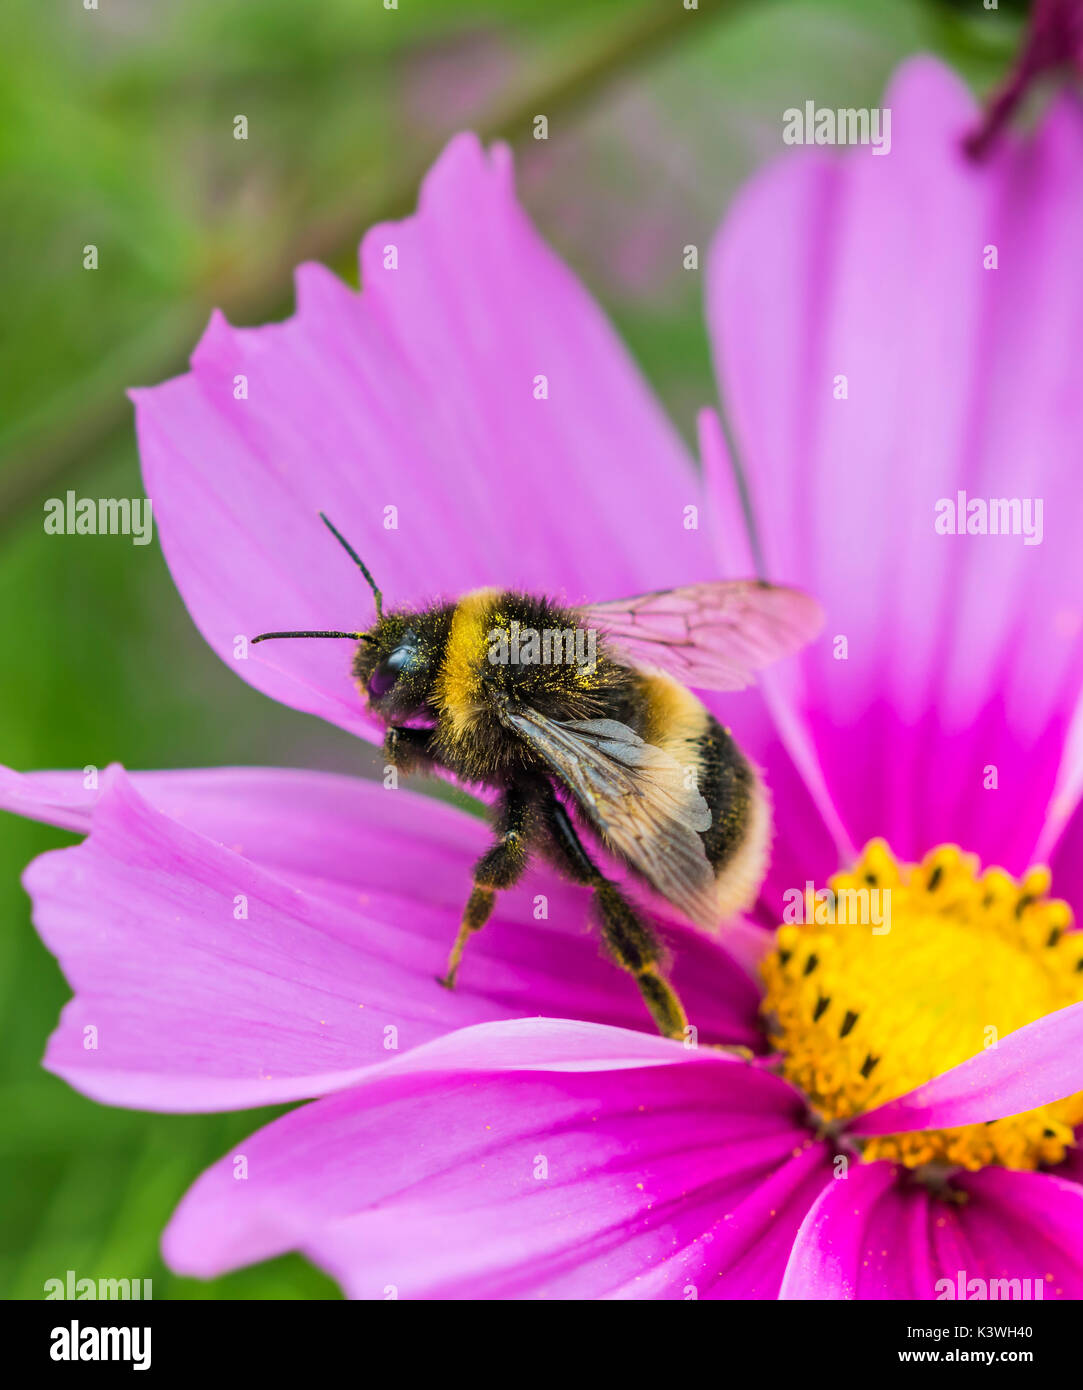 Buff Tailed Bumblebee (Bombus terrestris) on a pink Cosmos bipinnatus flower in Summer in West Sussex, UK. Bumblebee portrait. Copy space. - Stock Image